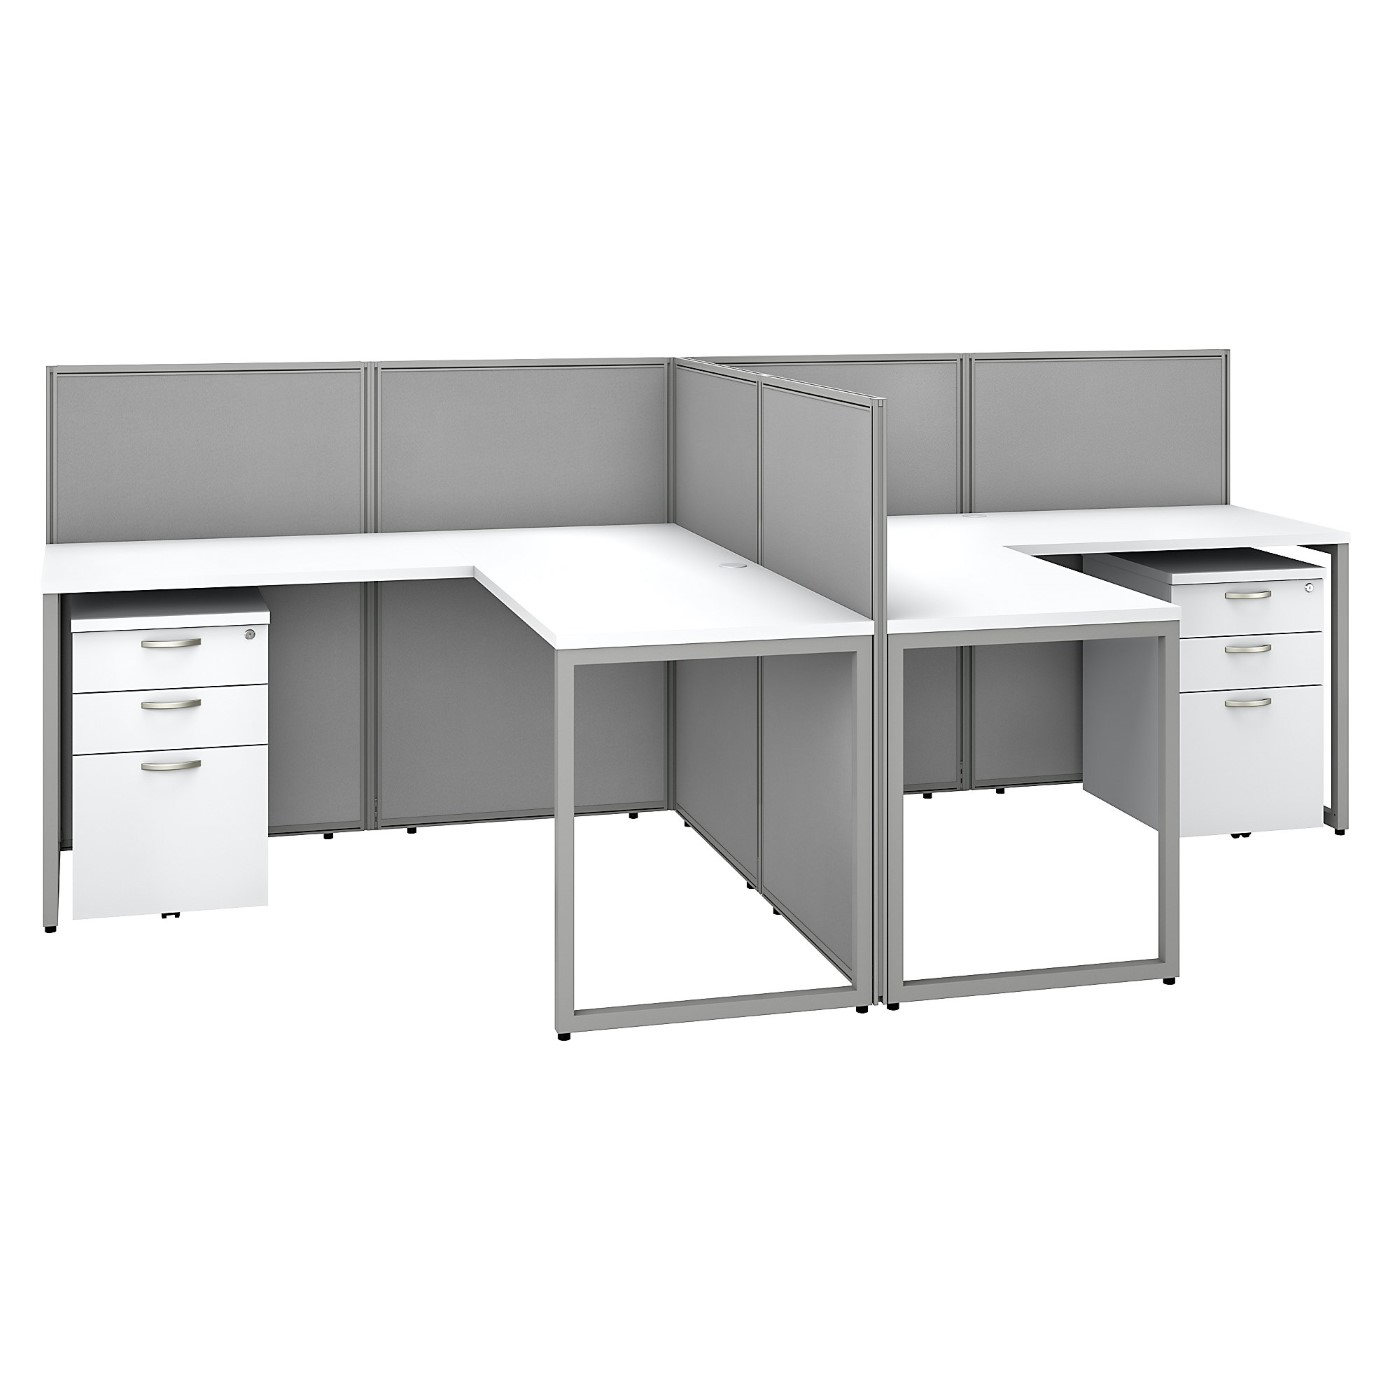 BUSH BUSINESS FURNITURE EASY OFFICE 60W 2 PERSON L SHAPED CUBICLE DESK WITH DRAWERS AND 45H PANELS. FREE SHIPPING SALE DEDUCT 10% MORE ENTER '10percent' IN COUPON CODE BOX WHILE CHECKING OUT. ENDS 5-31-20.